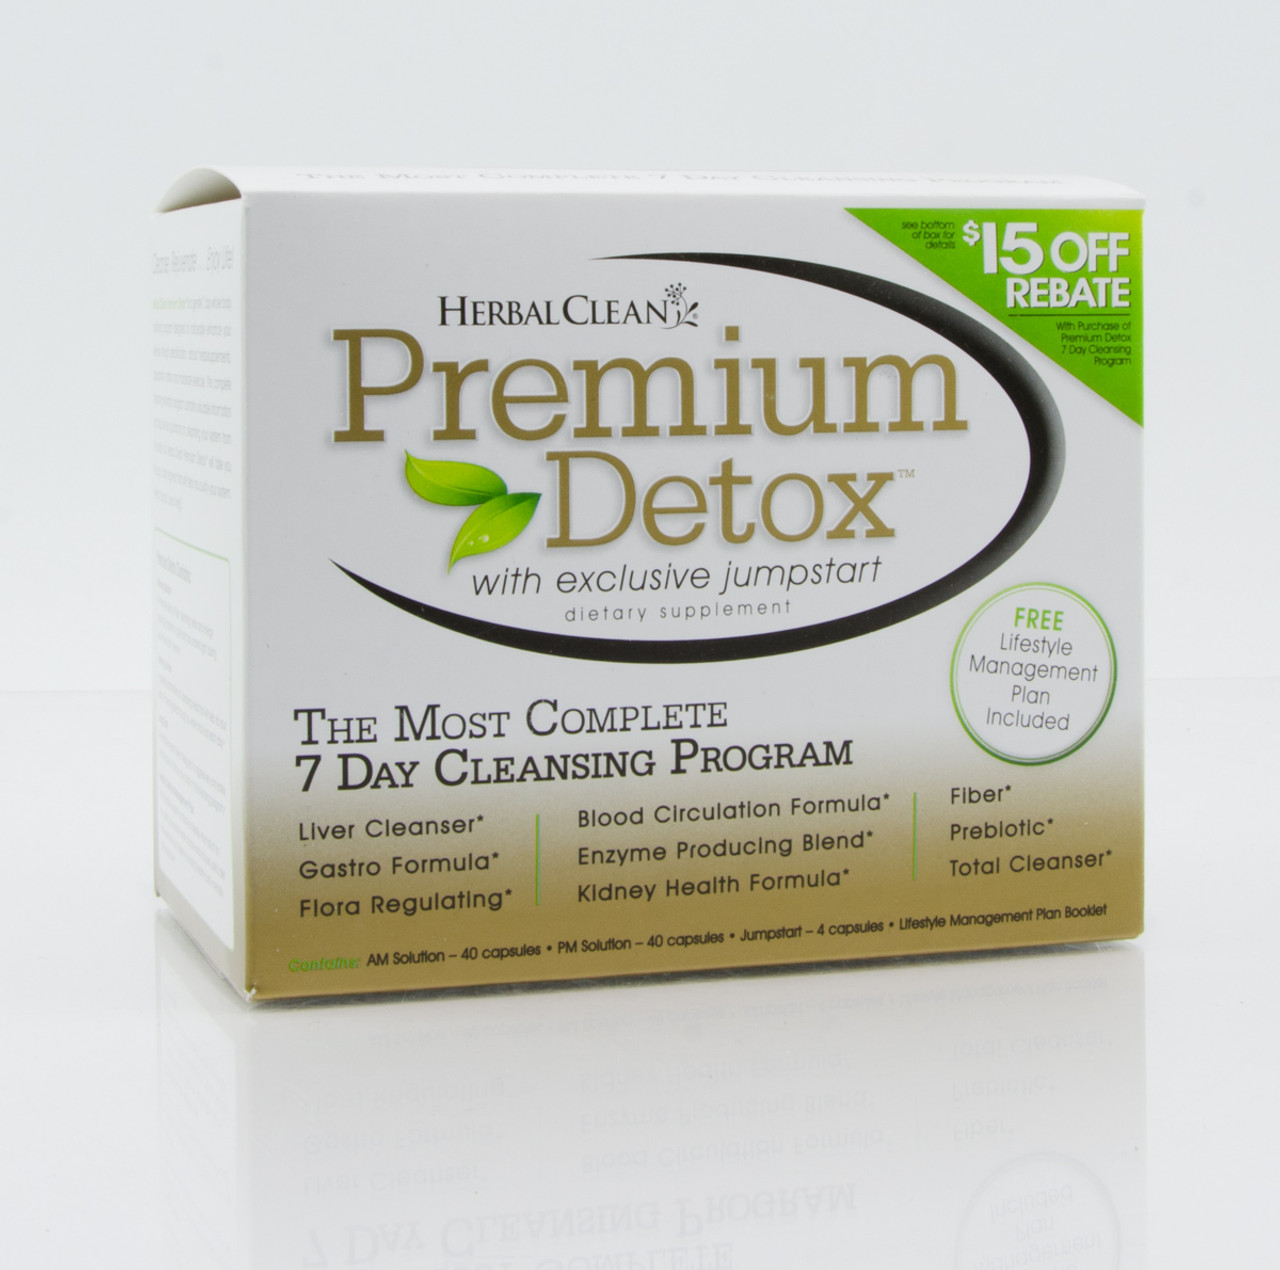 Herbal Clean with Exclusive Jumpstart